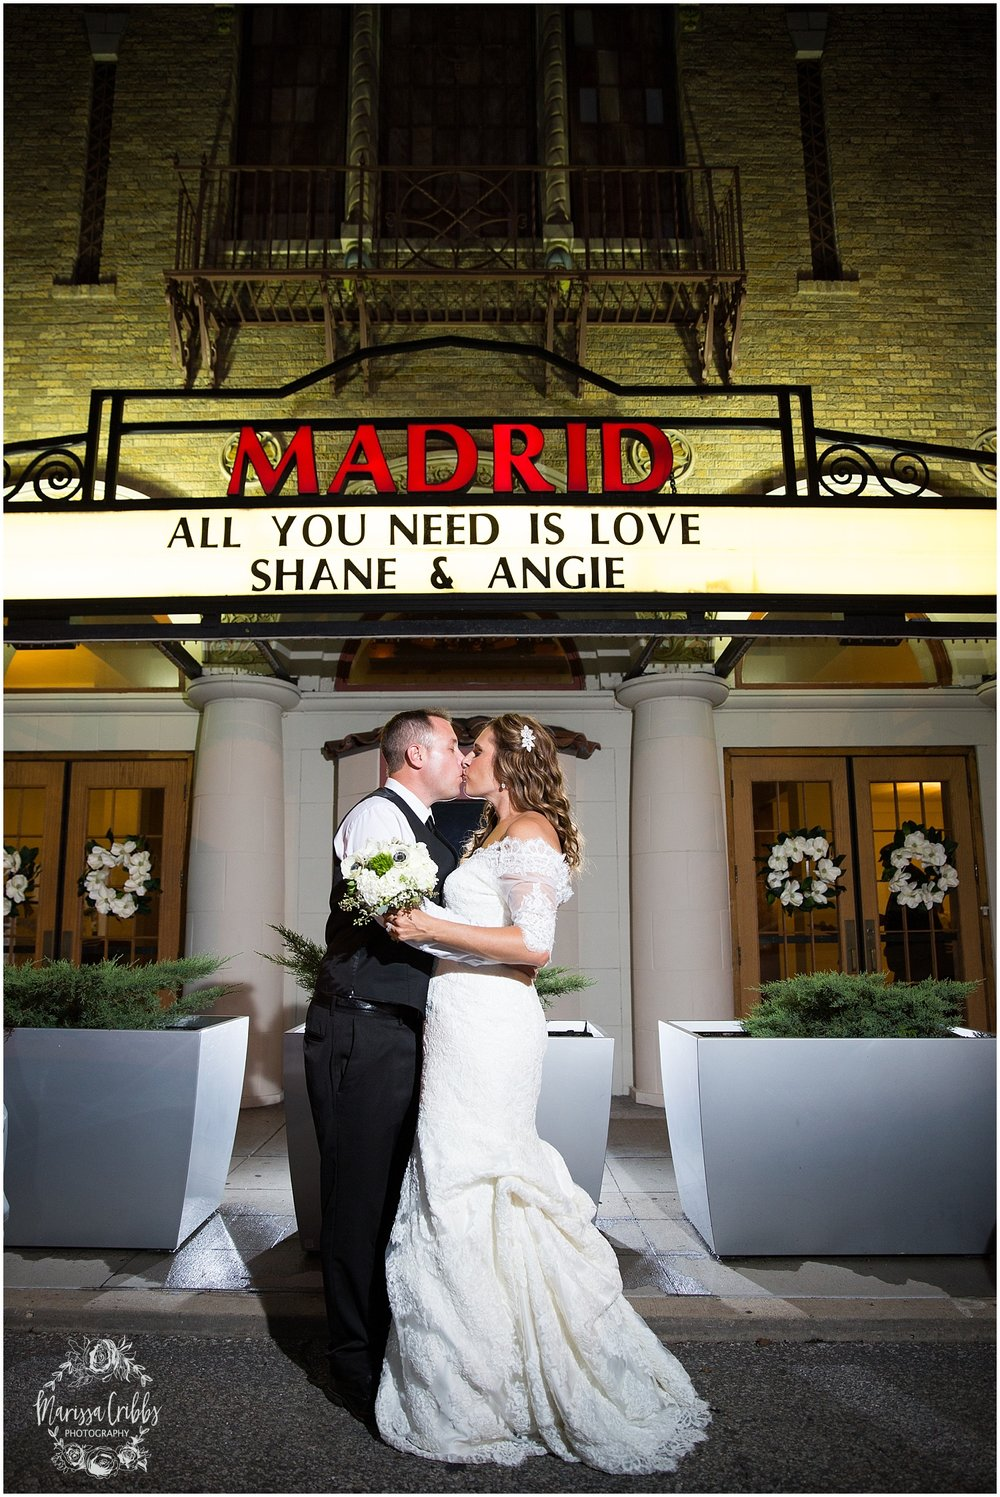 Madrid Theatre Wedding | Union Station | Liberty Memorial | KC Wedding Photographer | Marissa Cribbs Photography_0609.jpg